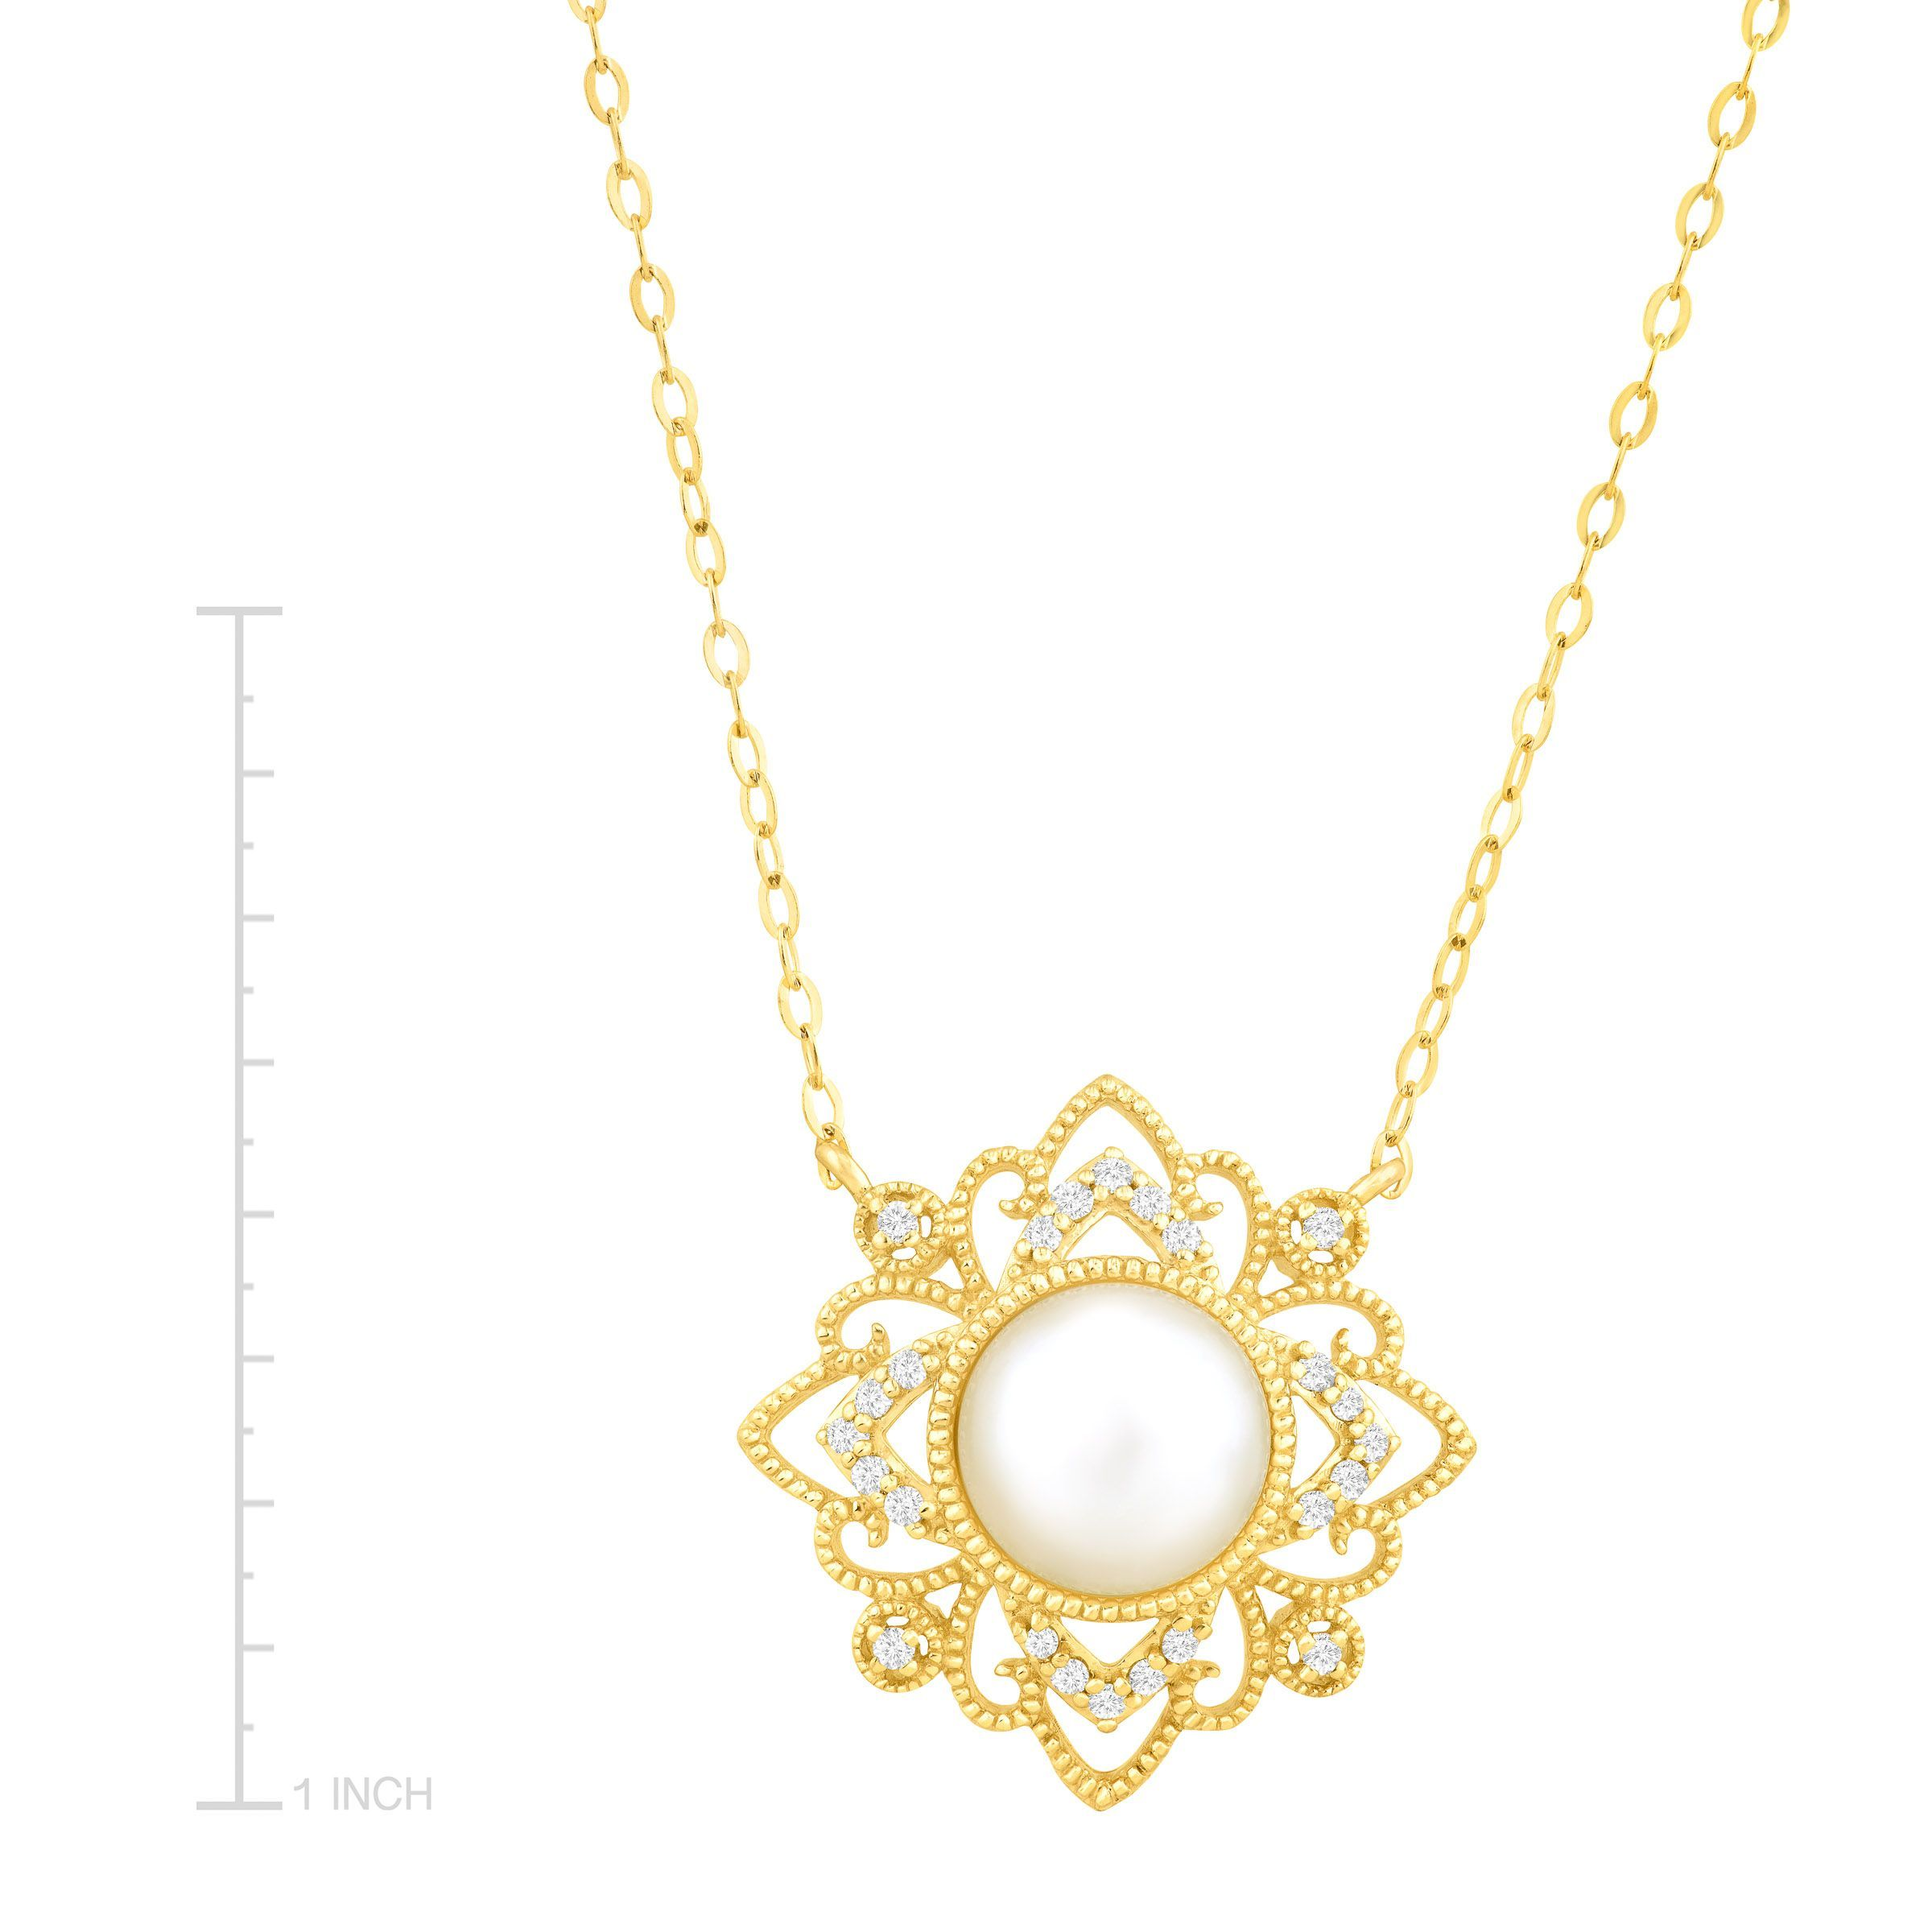 charm white diamore circle page necklace pendent diamond pendant shape centres gold